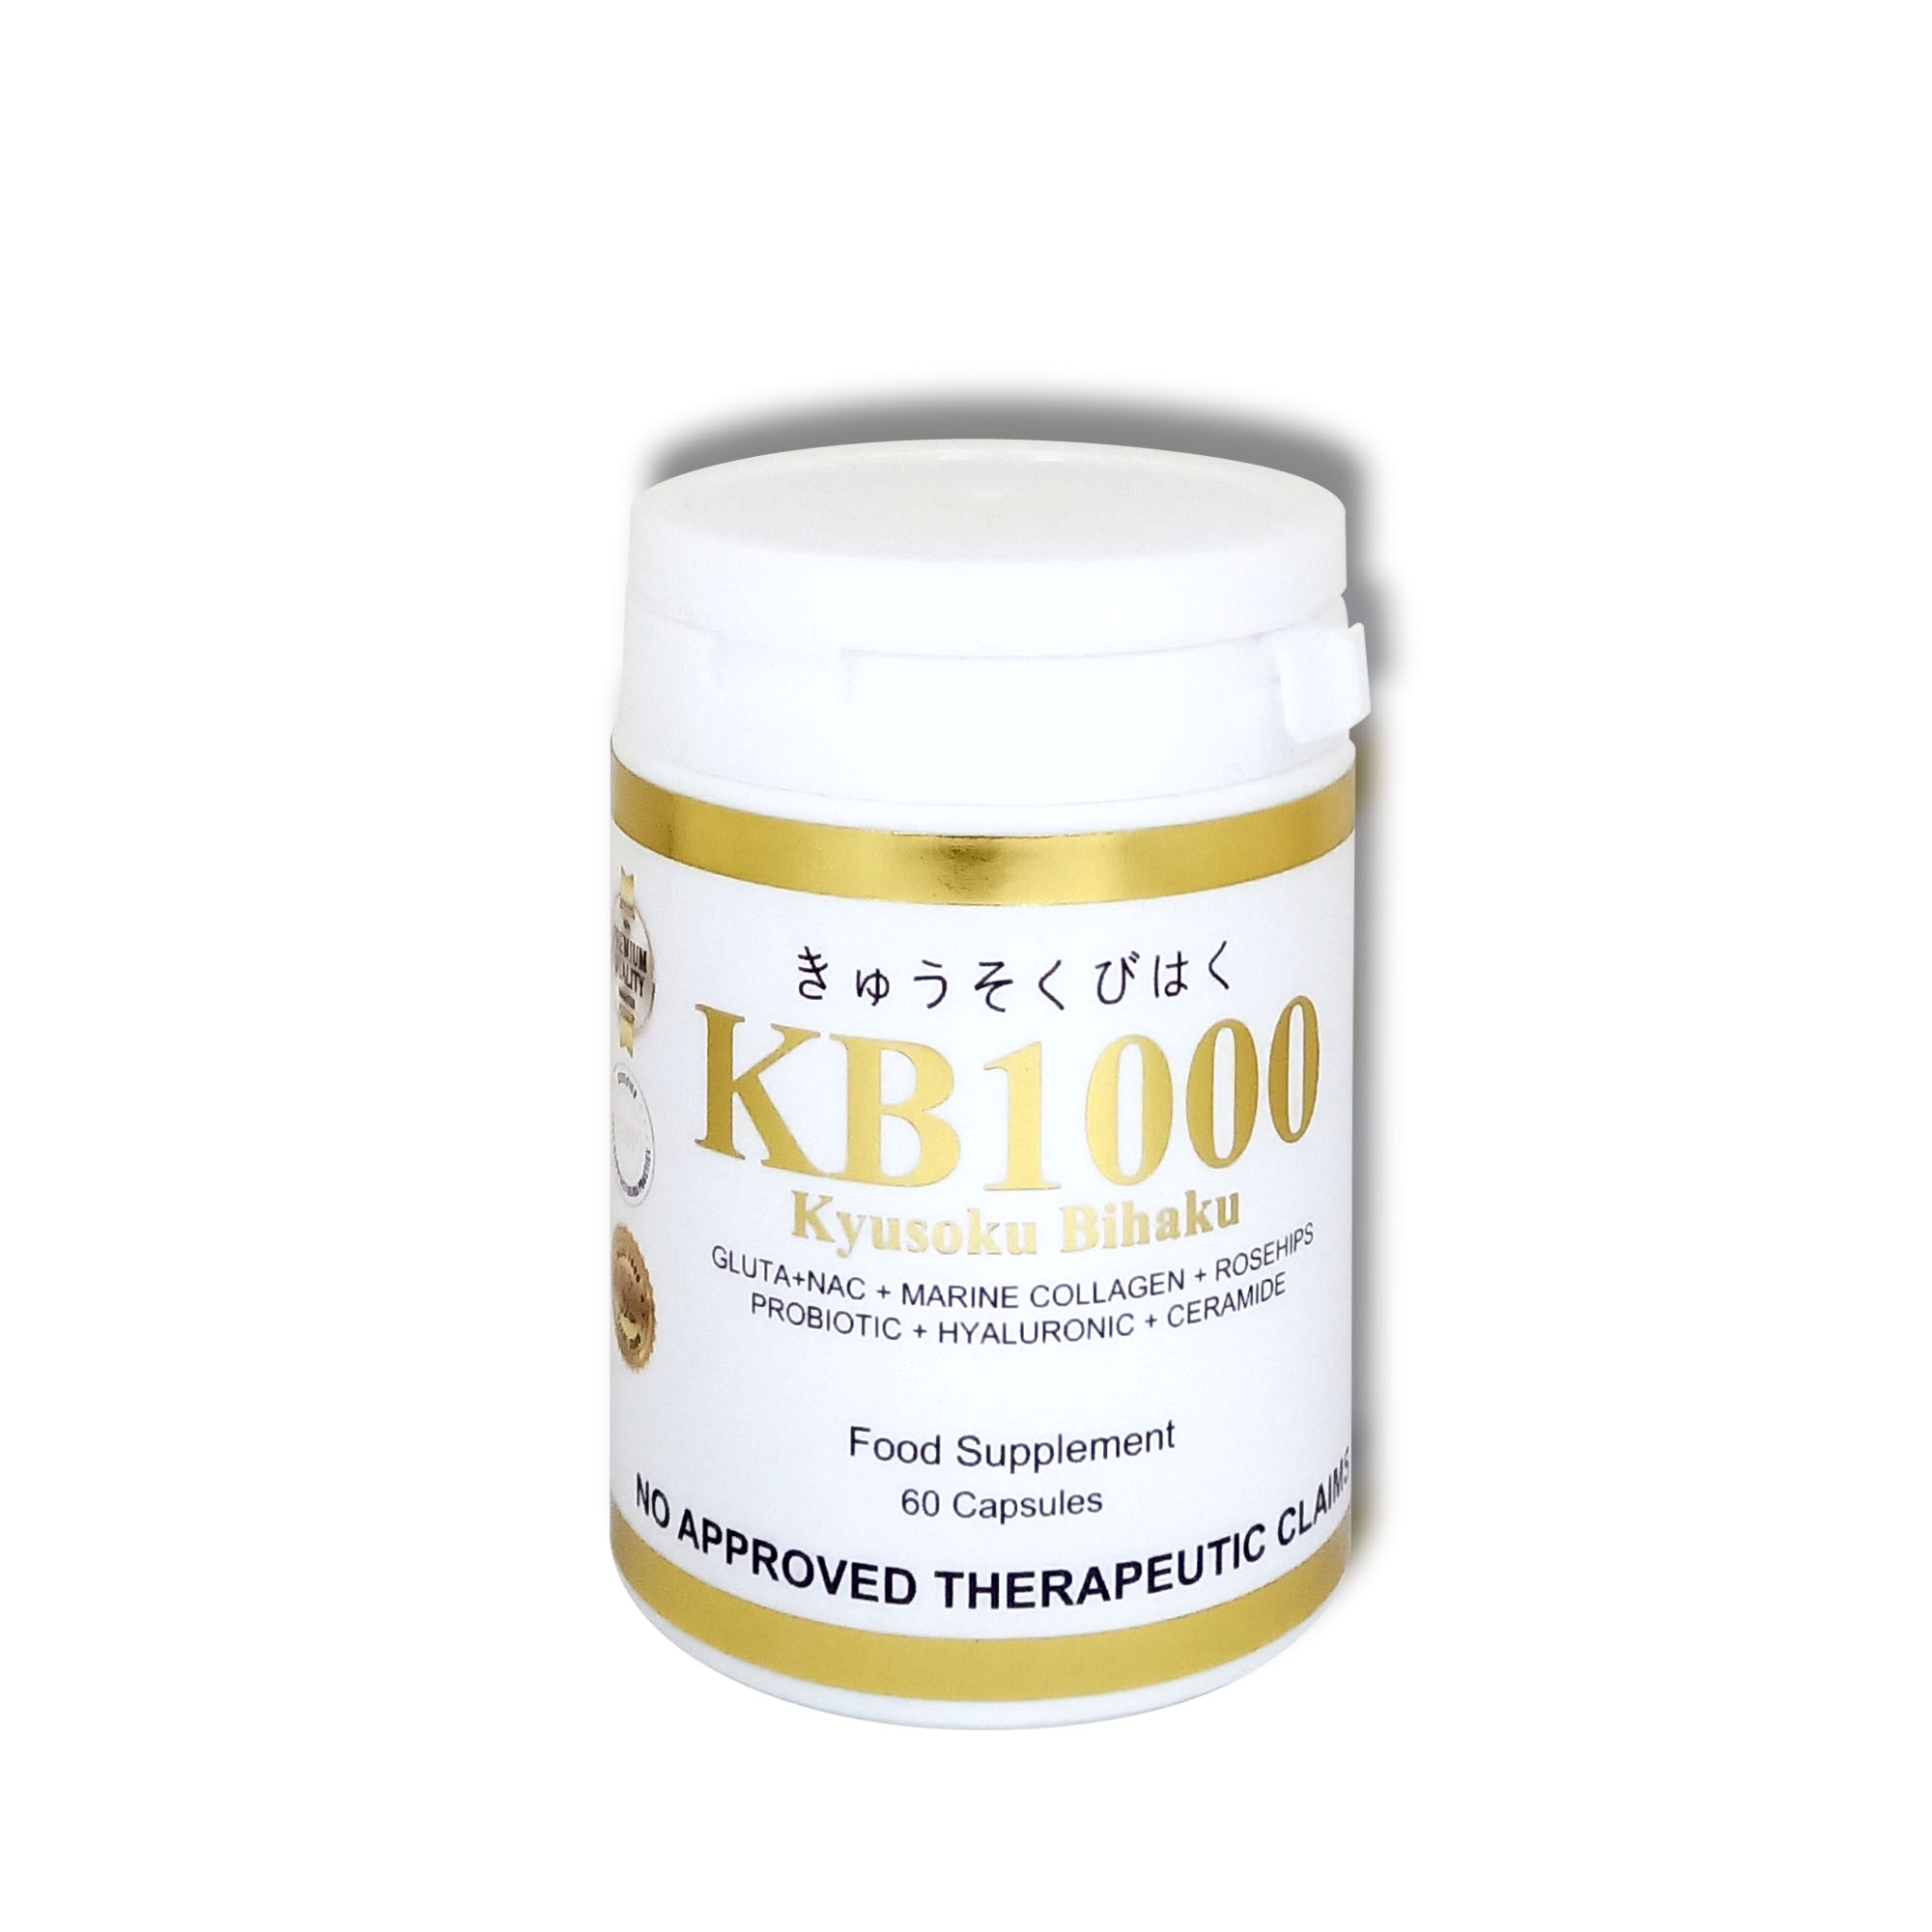 -NEW- KB 1000 Skin Glowing Whitening + Anti Aging + Moisturizing